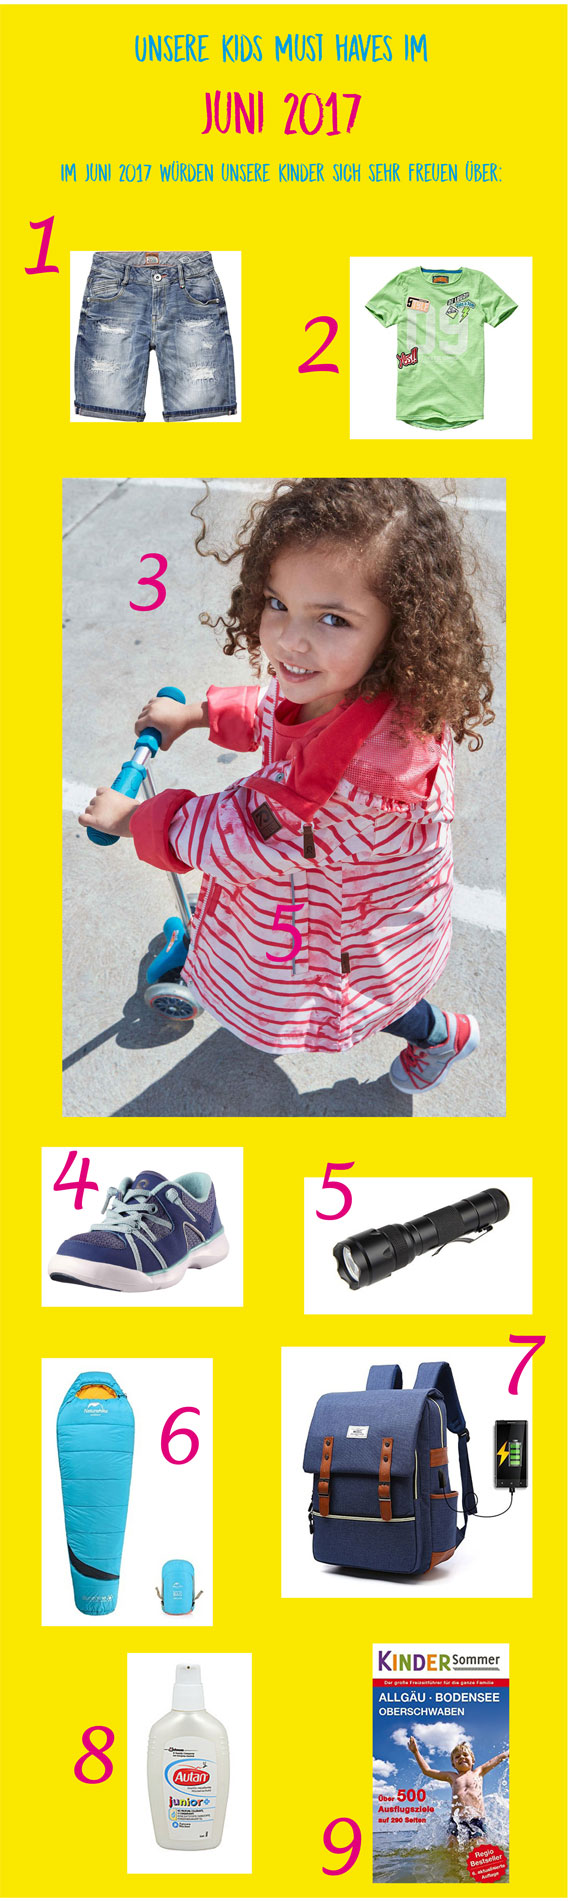 Juni-Kids-Must-haves-2017